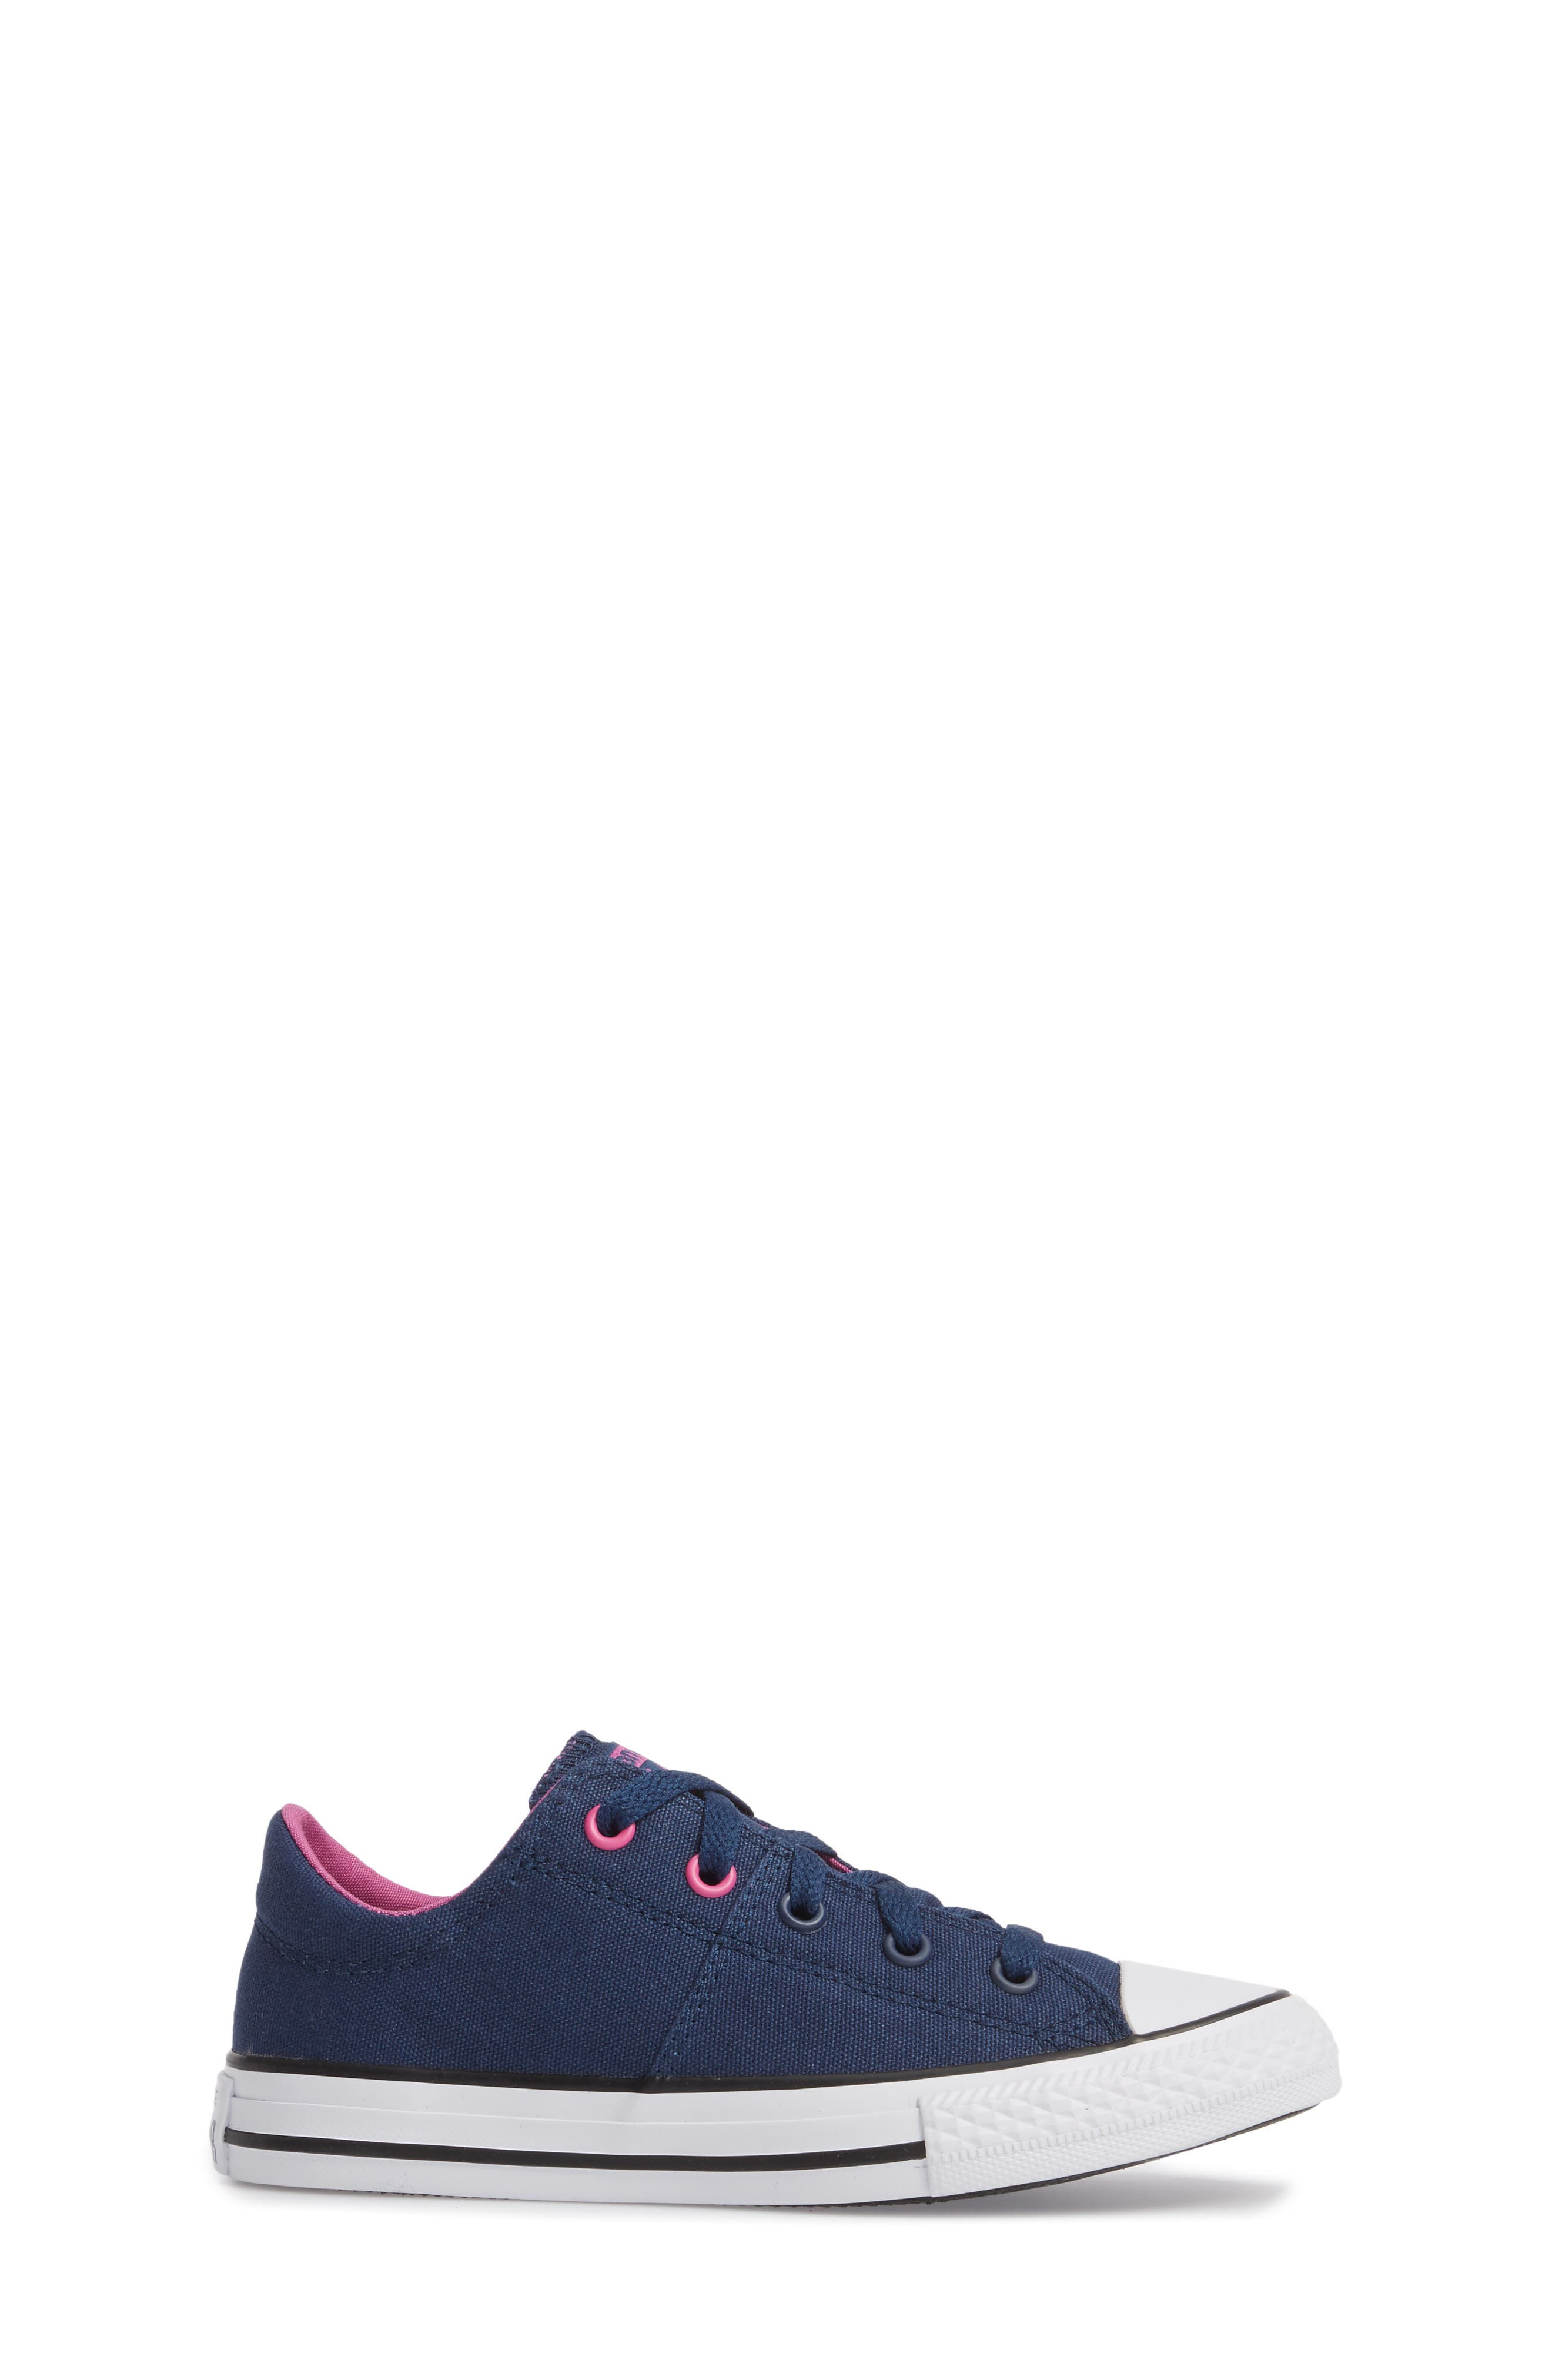 Chuck Taylor<sup>®</sup> All Star<sup>®</sup> Madison Low Top Sneaker,                             Alternate thumbnail 14, color,